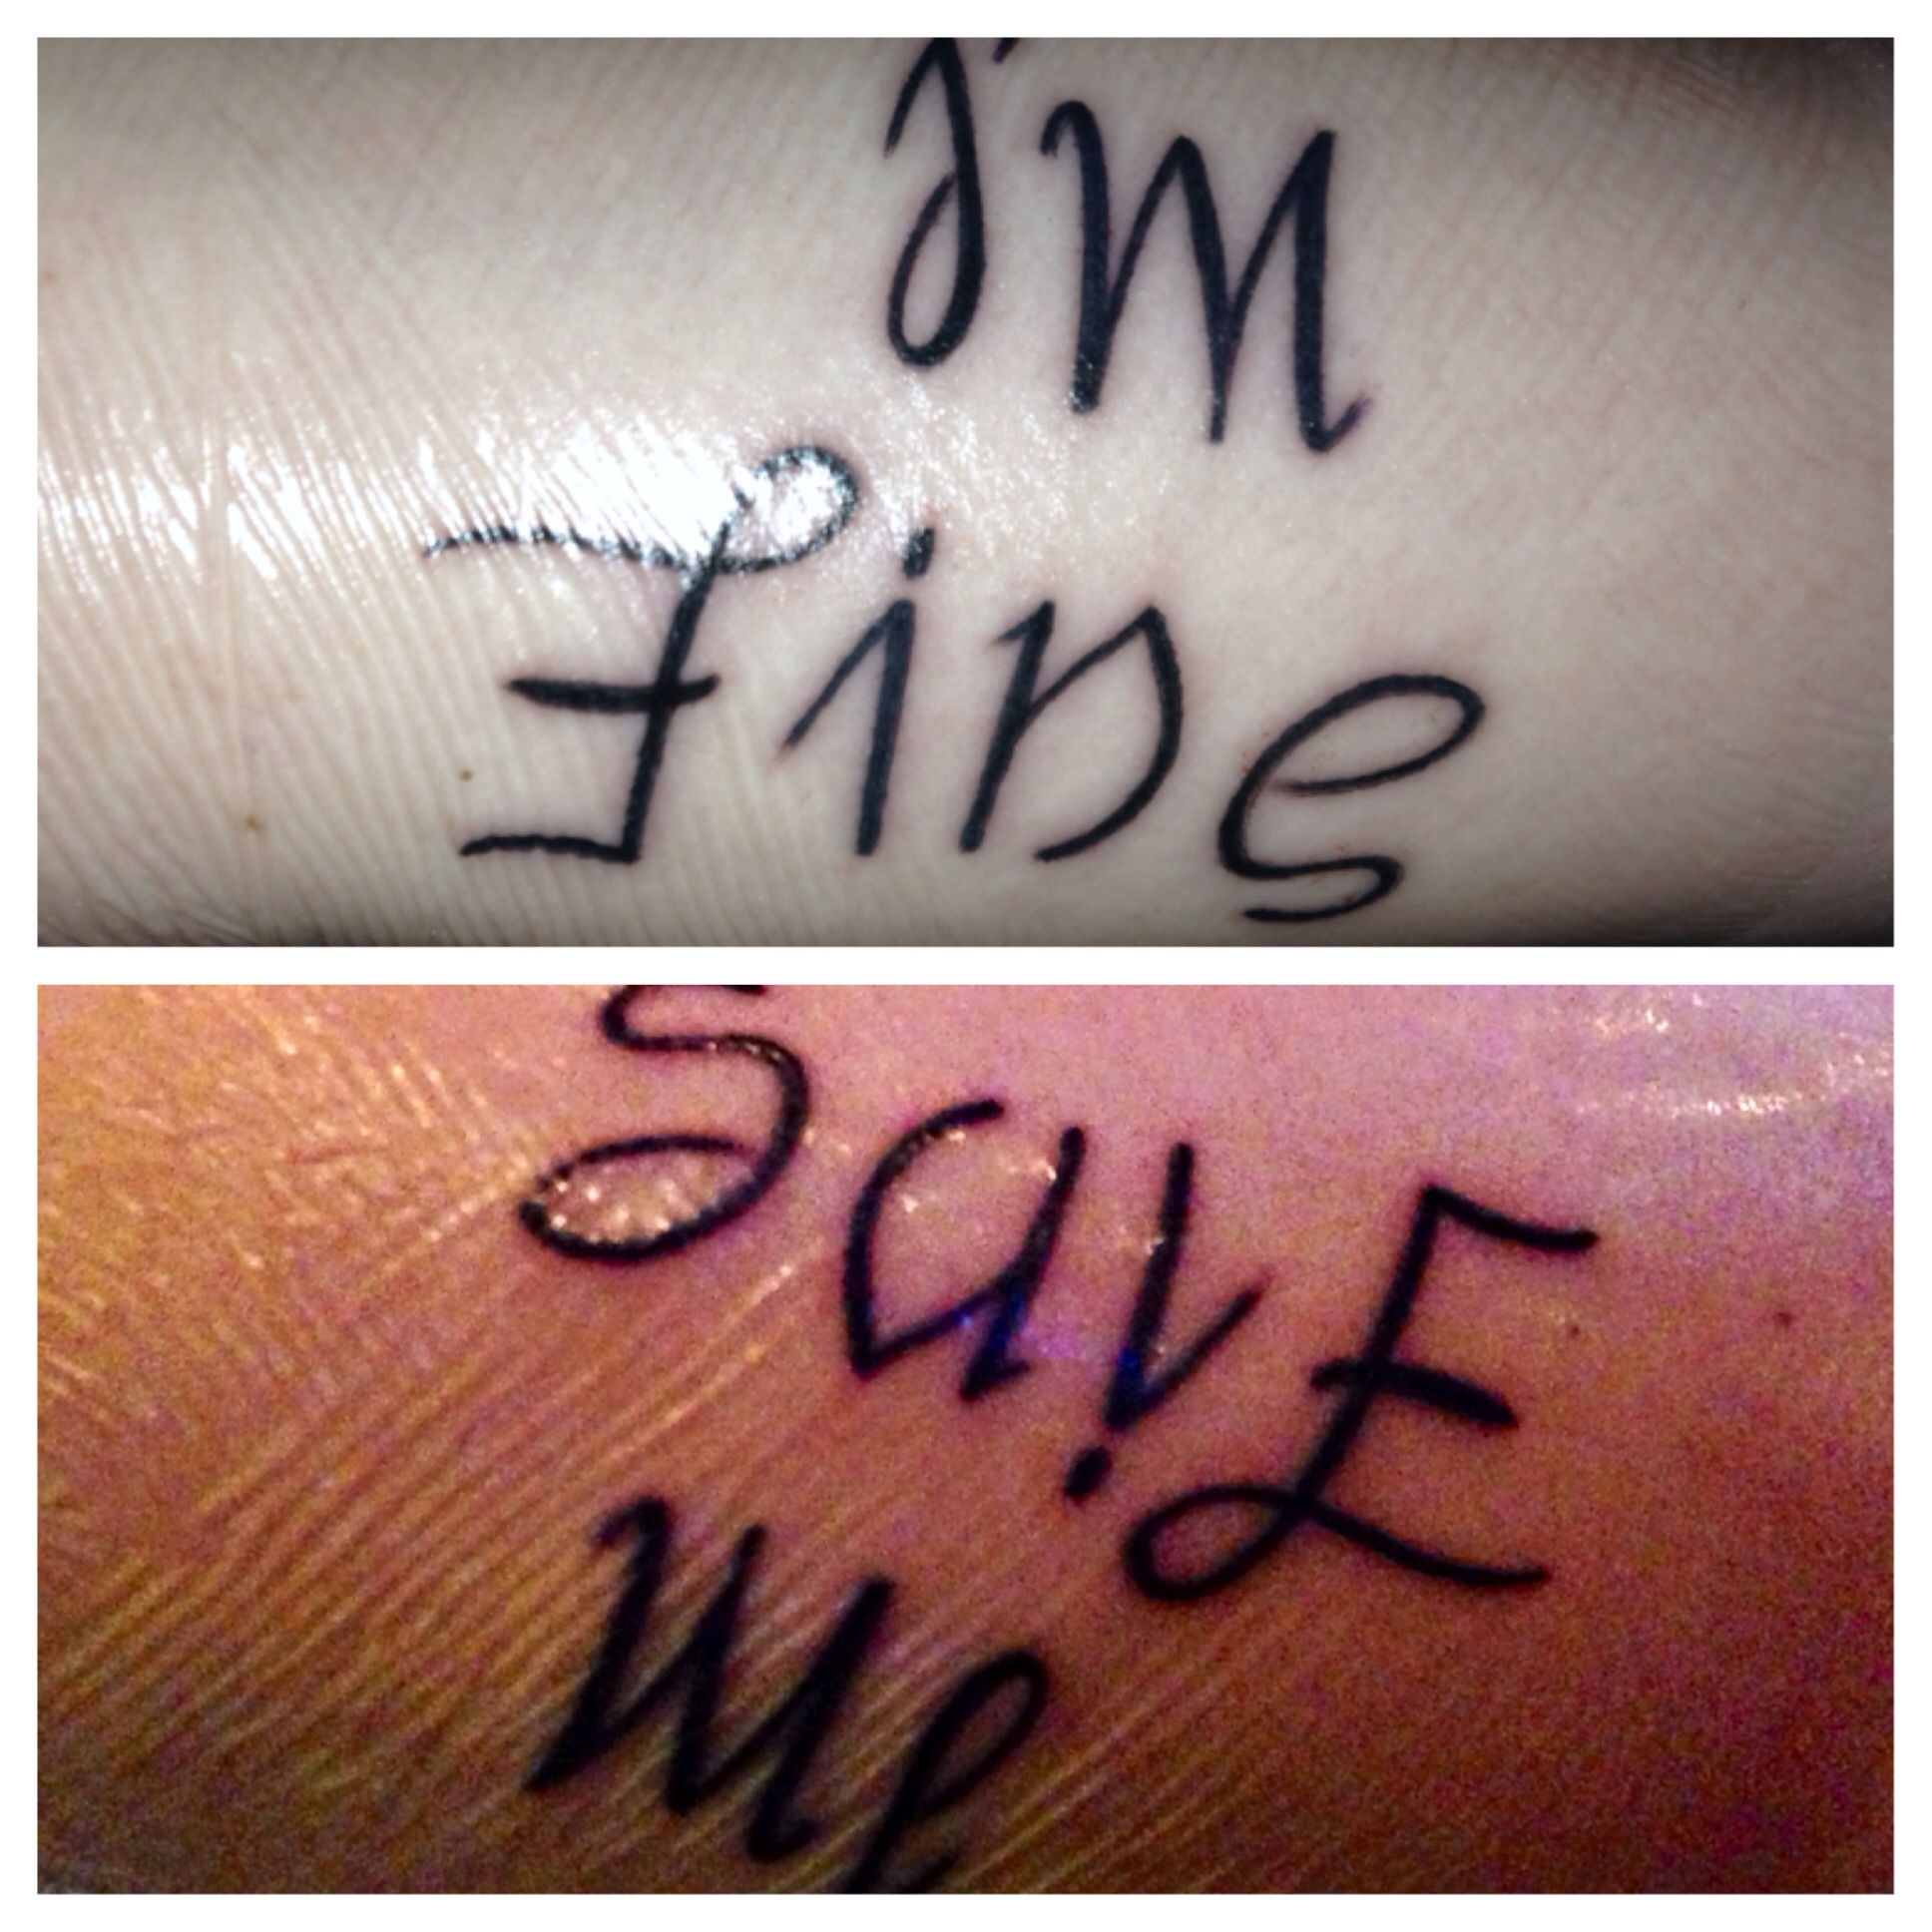 I M Fine Save Me Reversible Tat Tribute To My Lifetime: I'm Fine/save Me Reversible Tat, Tribute To My Lifetime